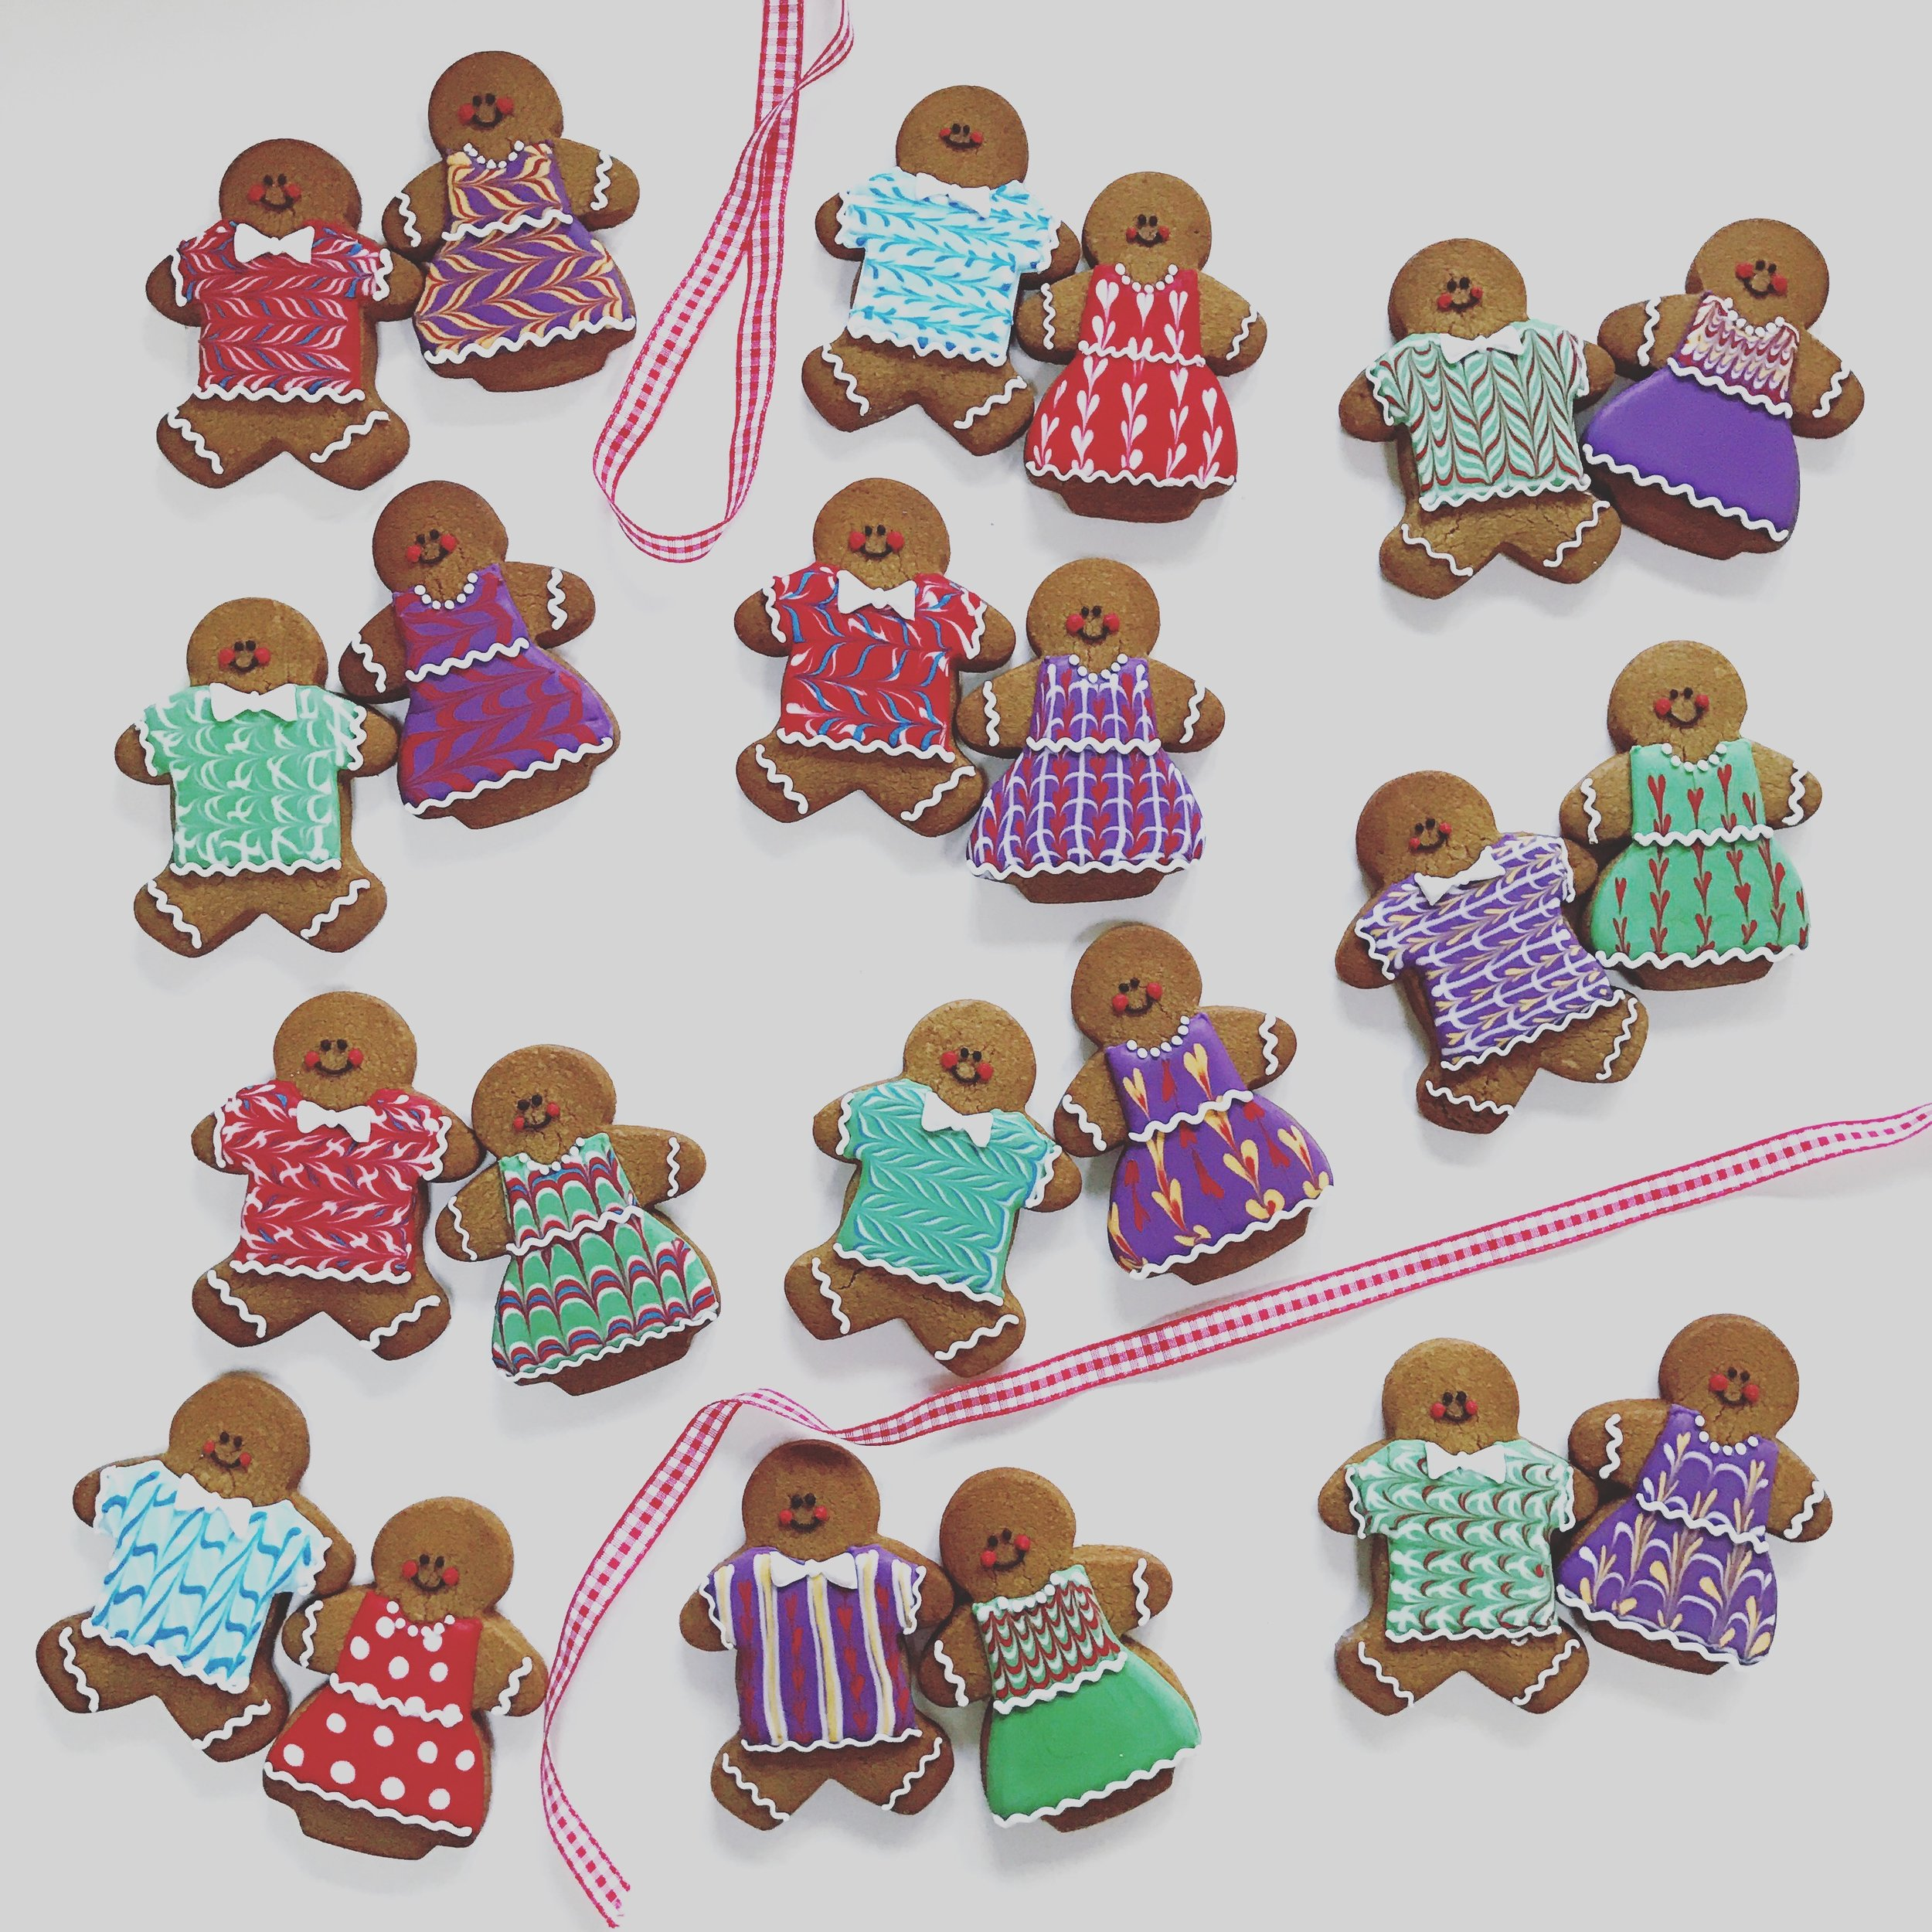 Iced Gingerbread Couples.jpg